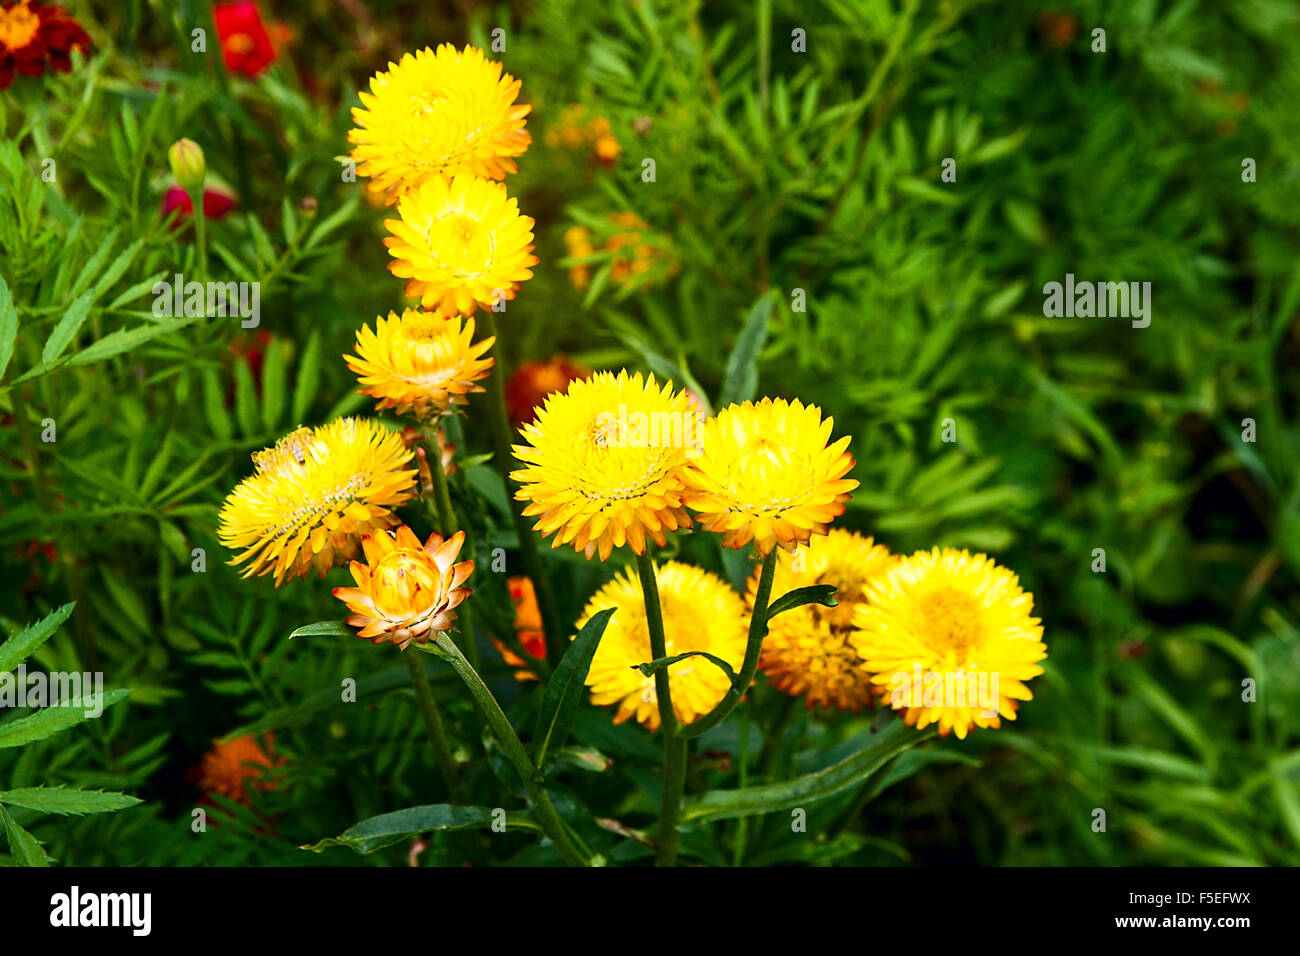 Garden flowers names - Helichrysum Or Straw Flower In Outdoor Garden Yellow Straw Flowers Scientific Name Is Helichrysum Bracteatum